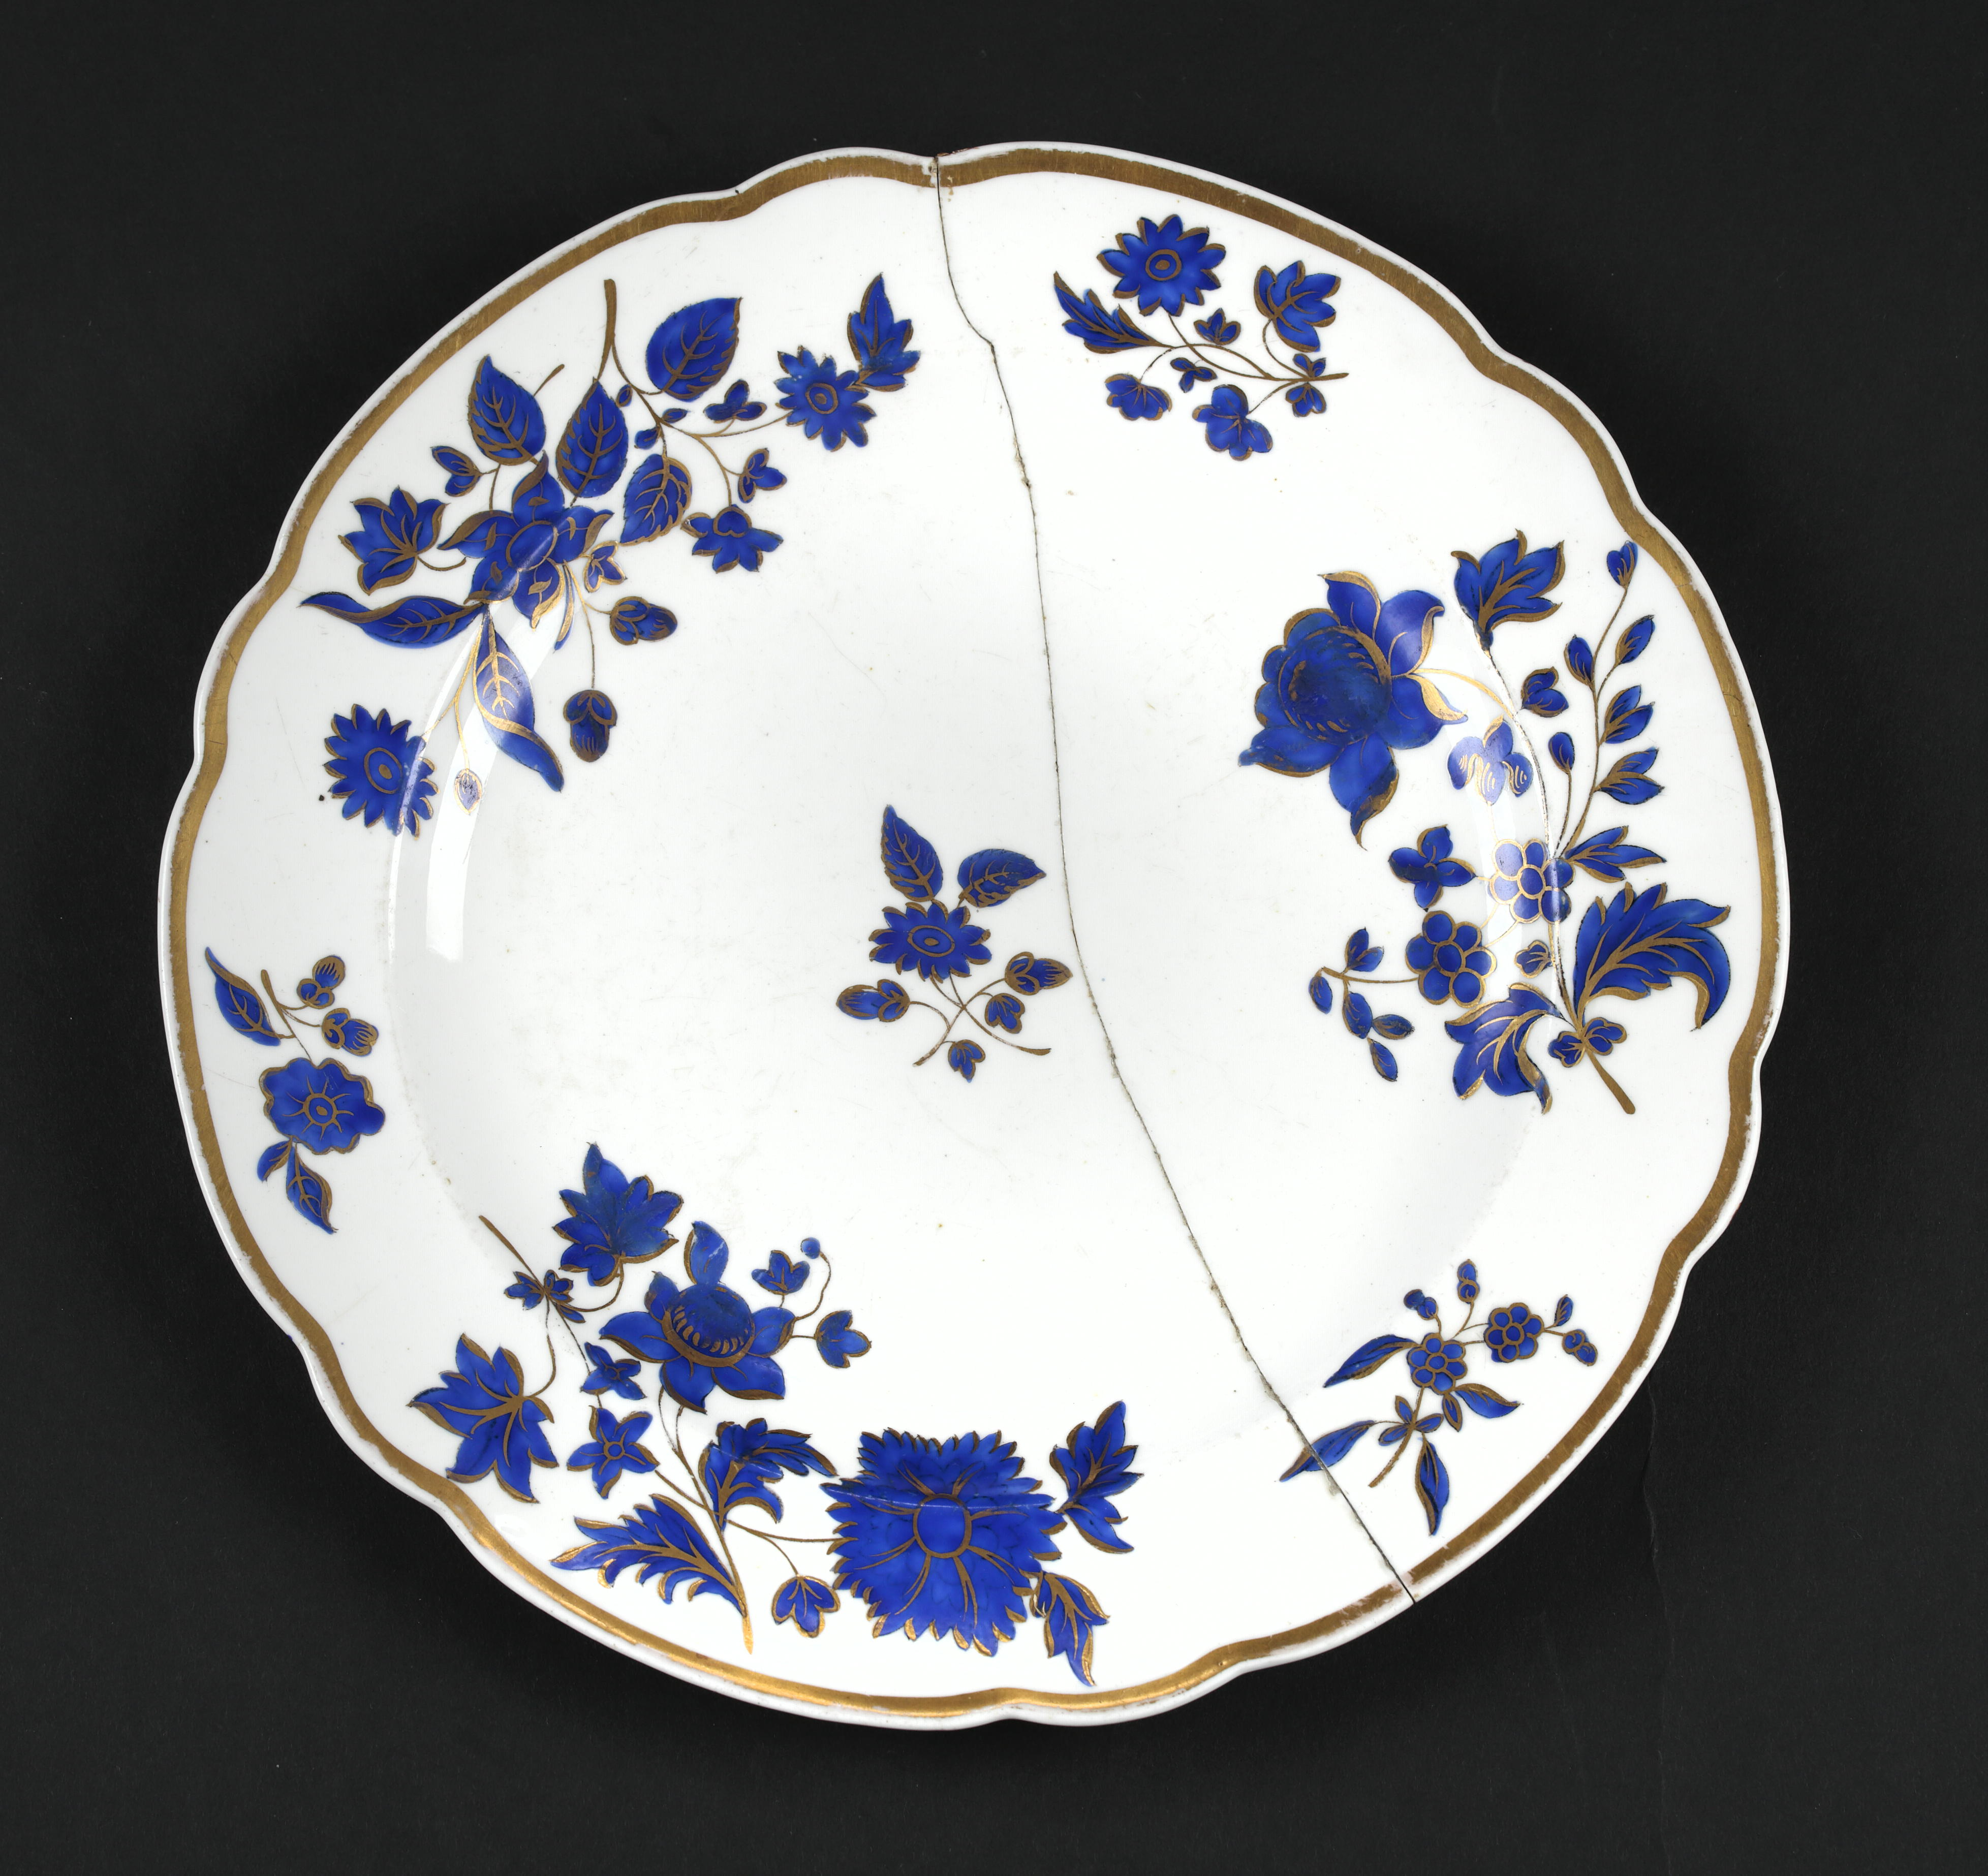 Dinner plate, part of a service used at Claremont during the time of the Duchess of Albany's residence there ( 1890's ). Circular with fluted edges, gold-painted outer rim, design of royal blue and gold flowers and leaves. On reverse side a circle of small flowers as a trade mark with